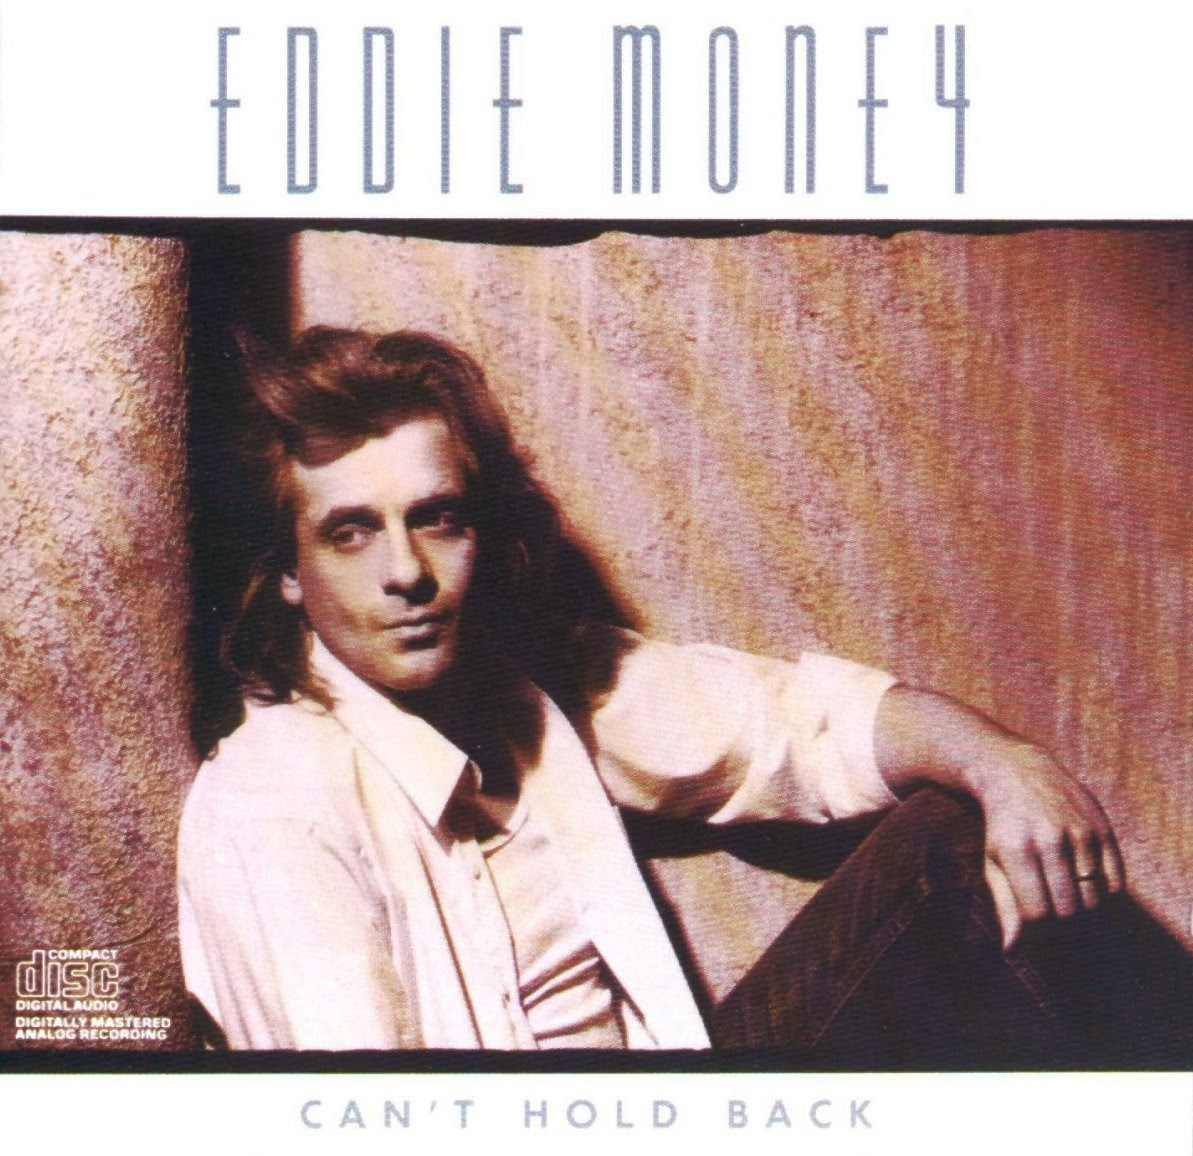 Eddie Money Can't hold back 1986